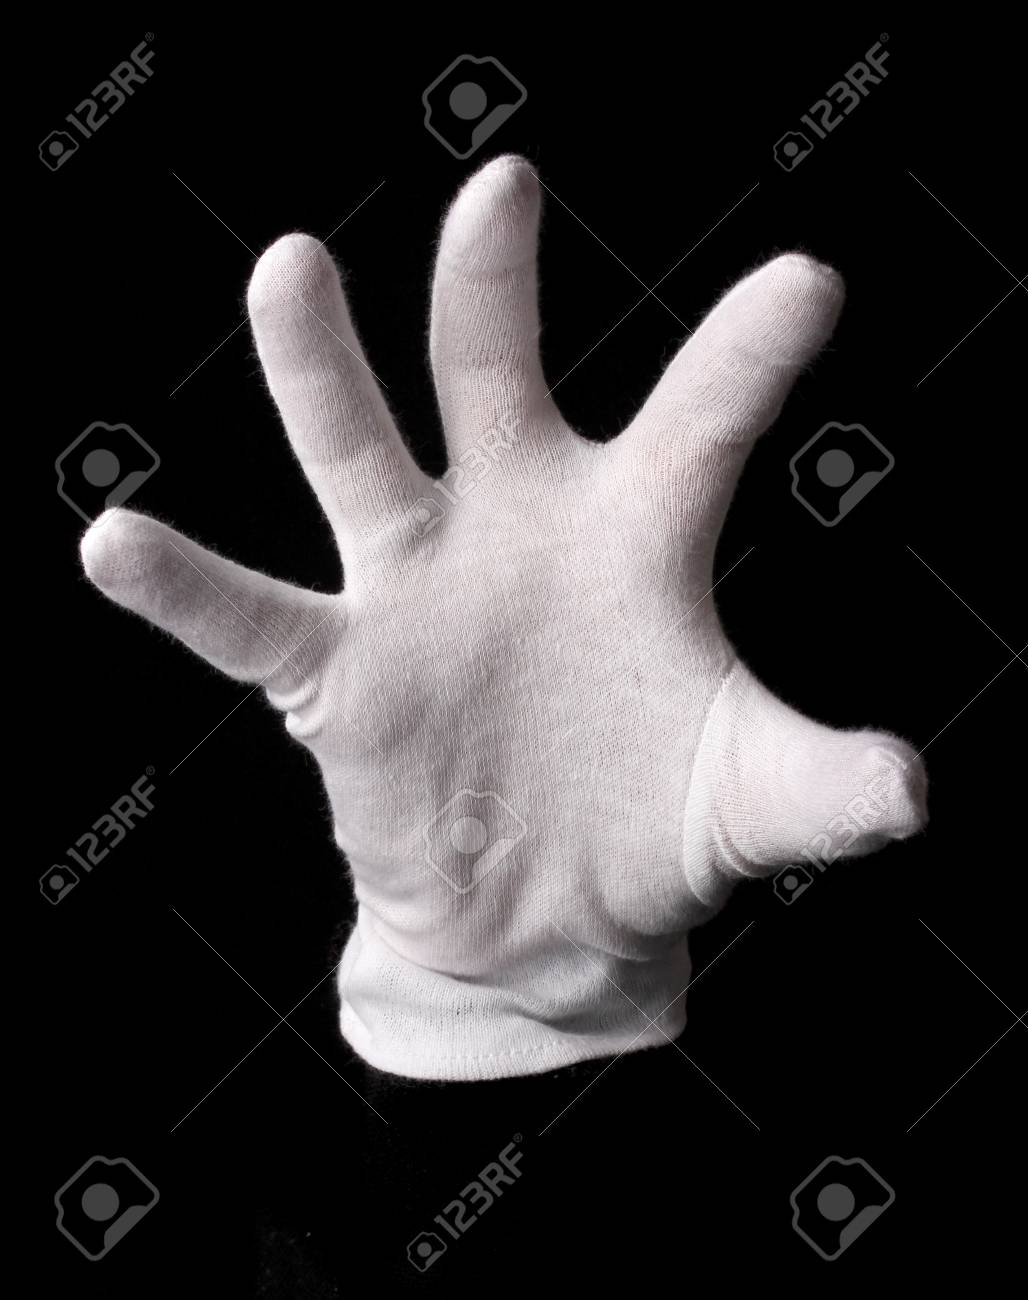 Hand in white glove making sign isolated on black Stock Photo - 15851819